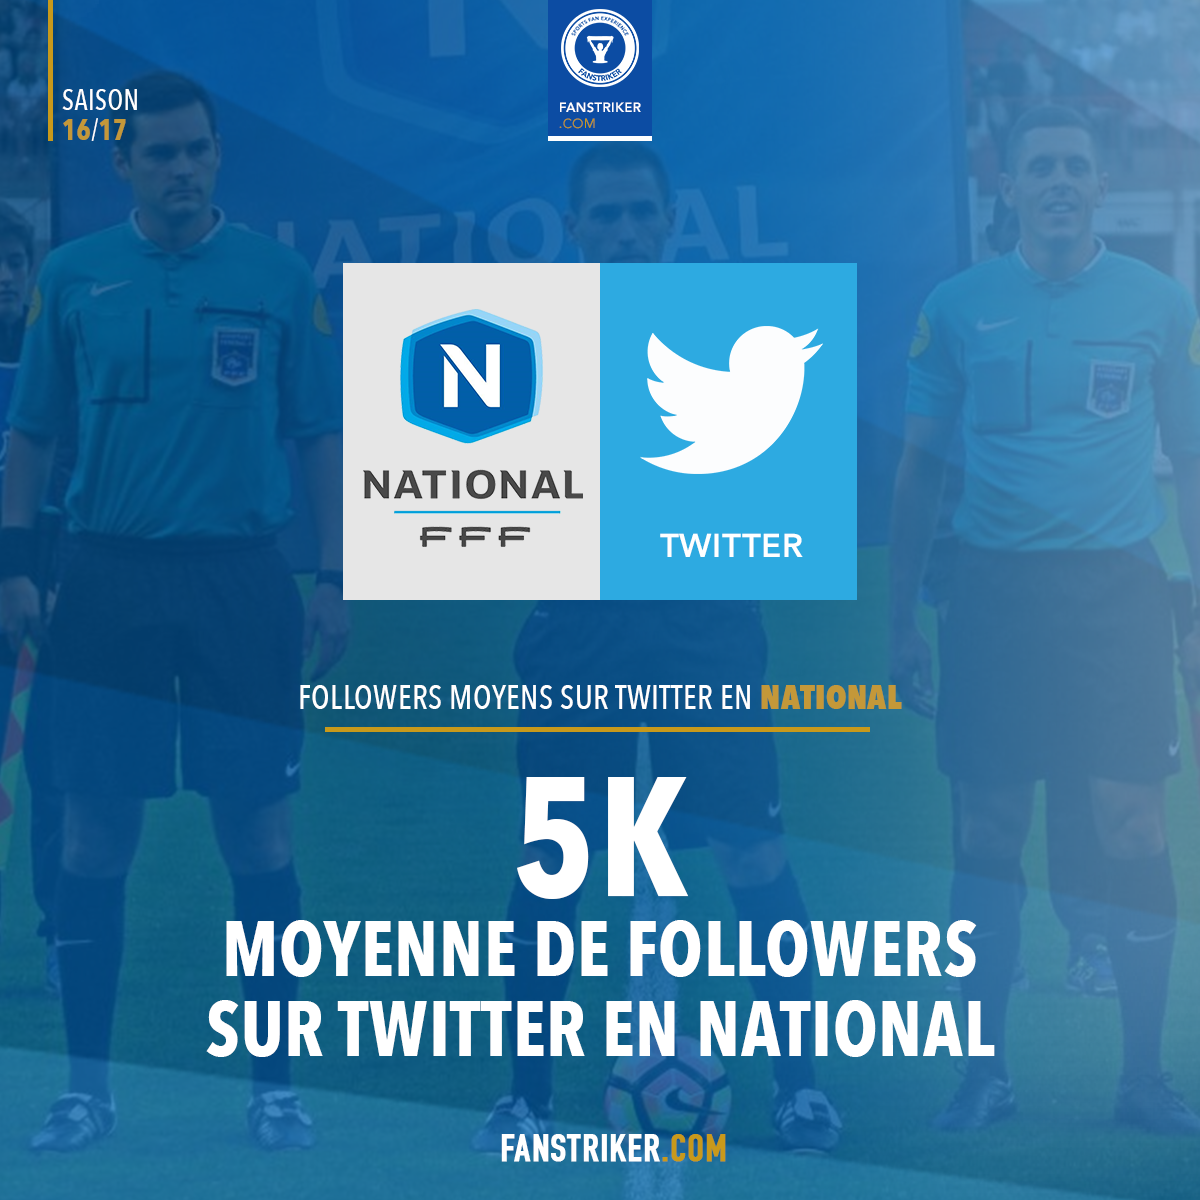 Le nombre moyen de Followers en National 1 sur Twitter